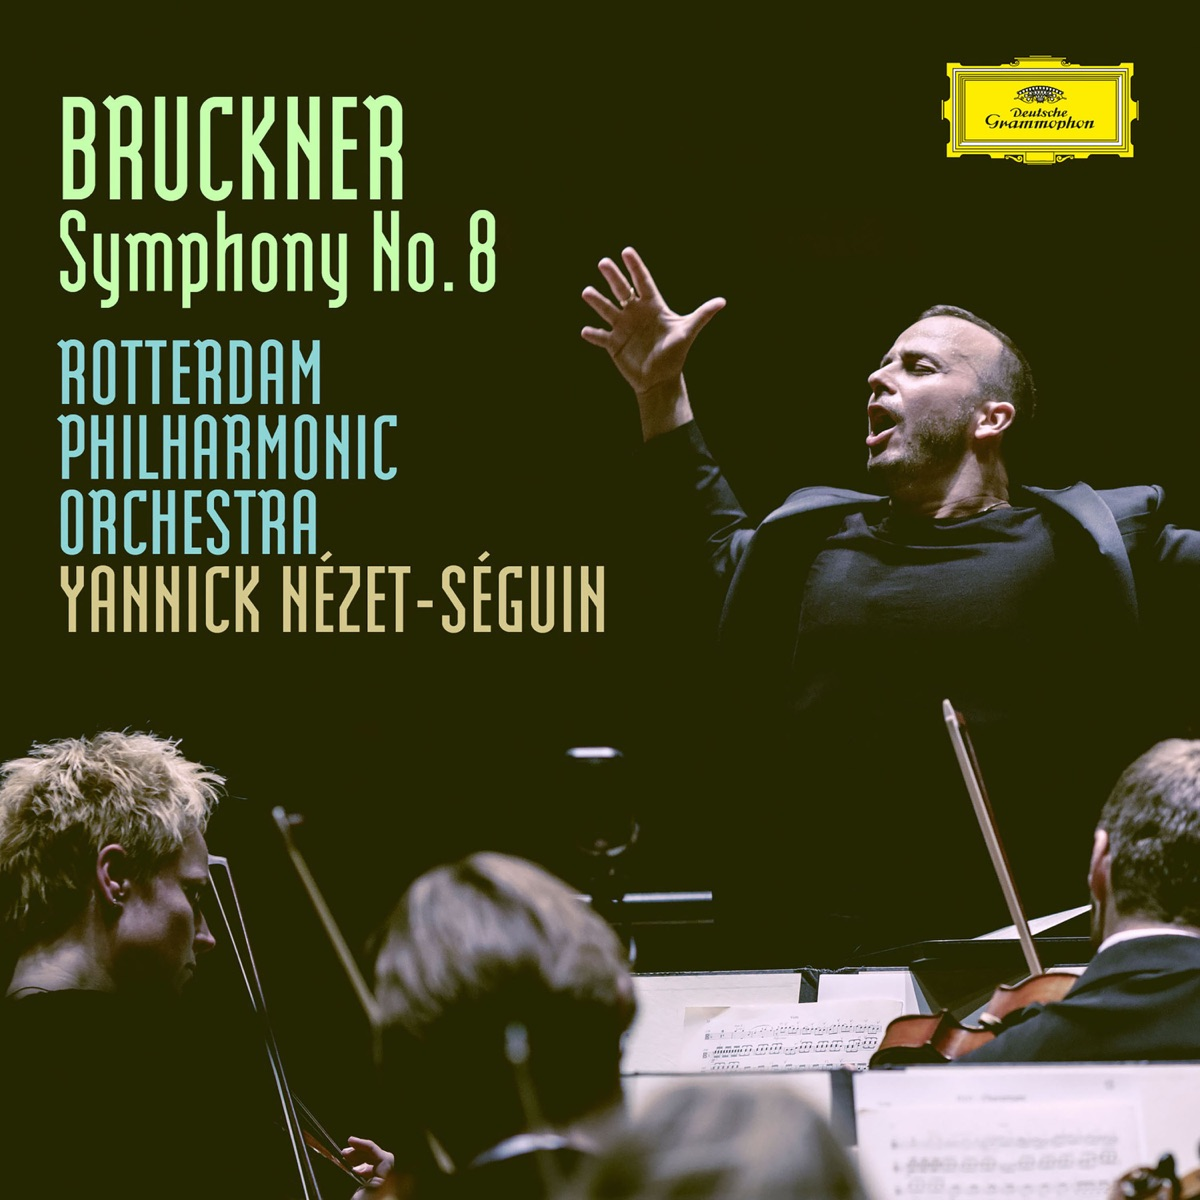 Bruckner Symphony No 8 in C Minor WAB 108 - Version Robert Haas 1939 Rotterdam Philharmonic Orchestra  Yannick Nézet-Séguin CD cover